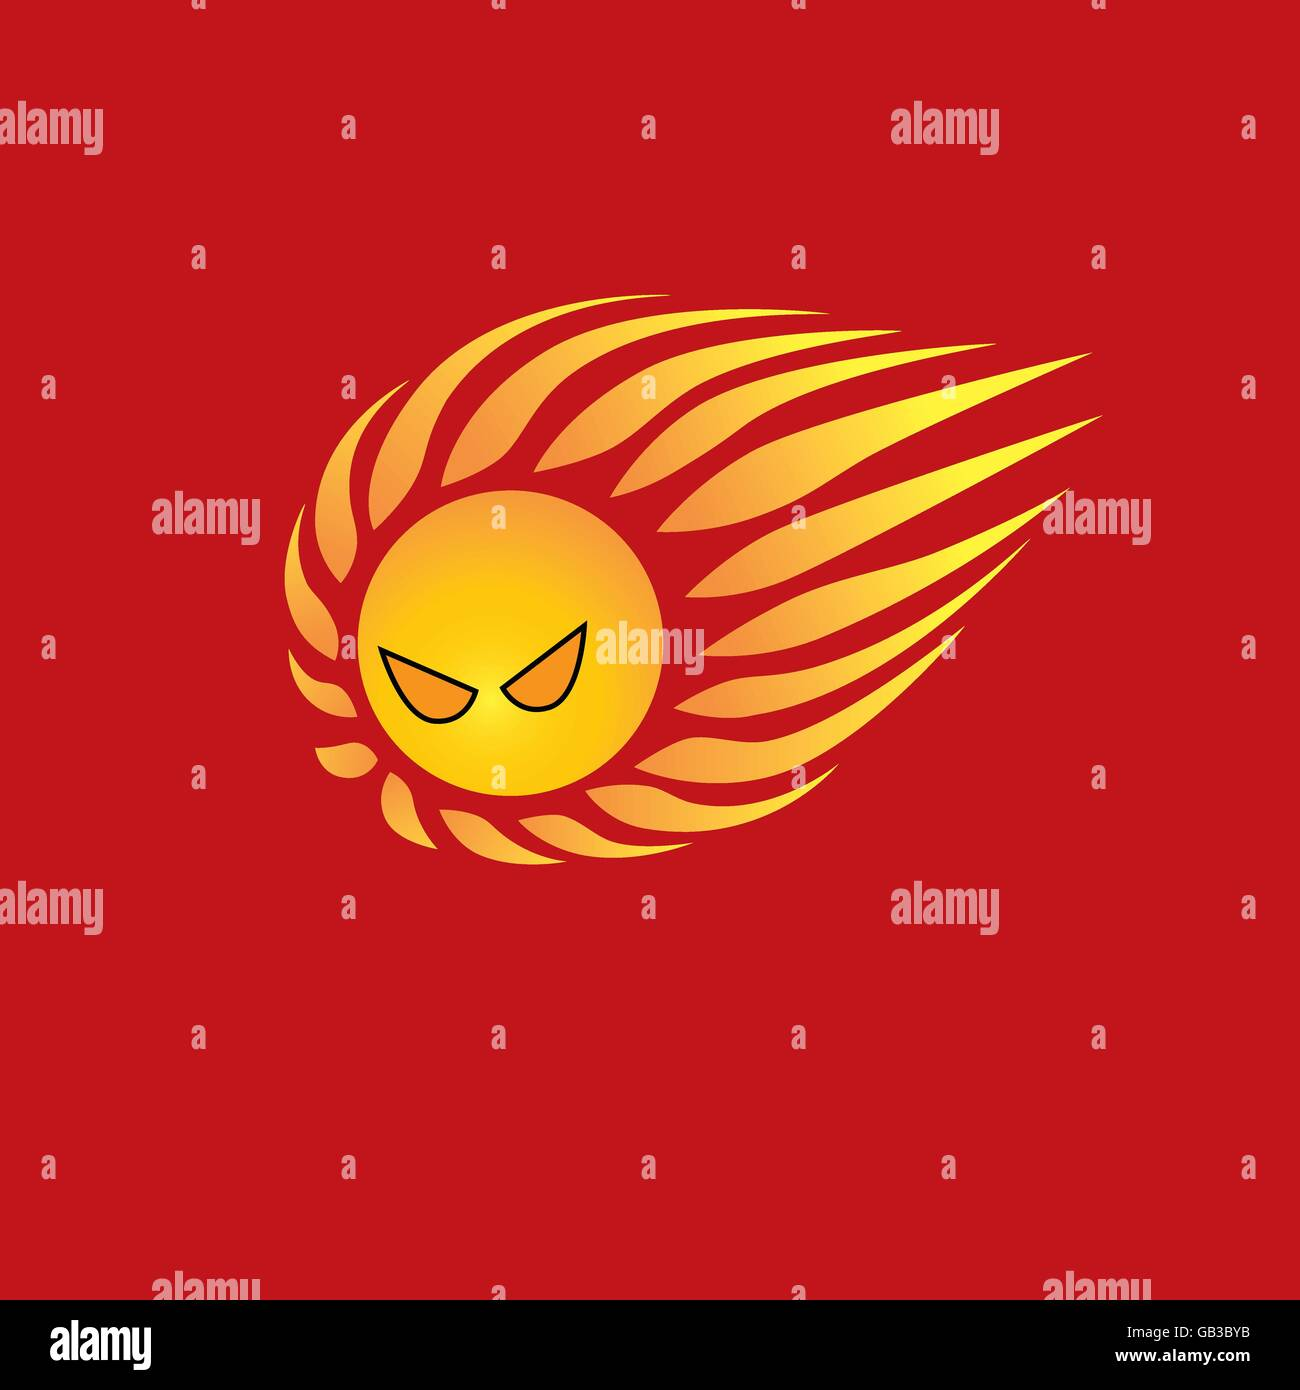 Mad sun logo on red background represent summer time, hot weather, sun burn, strong sunshine - Stock Vector